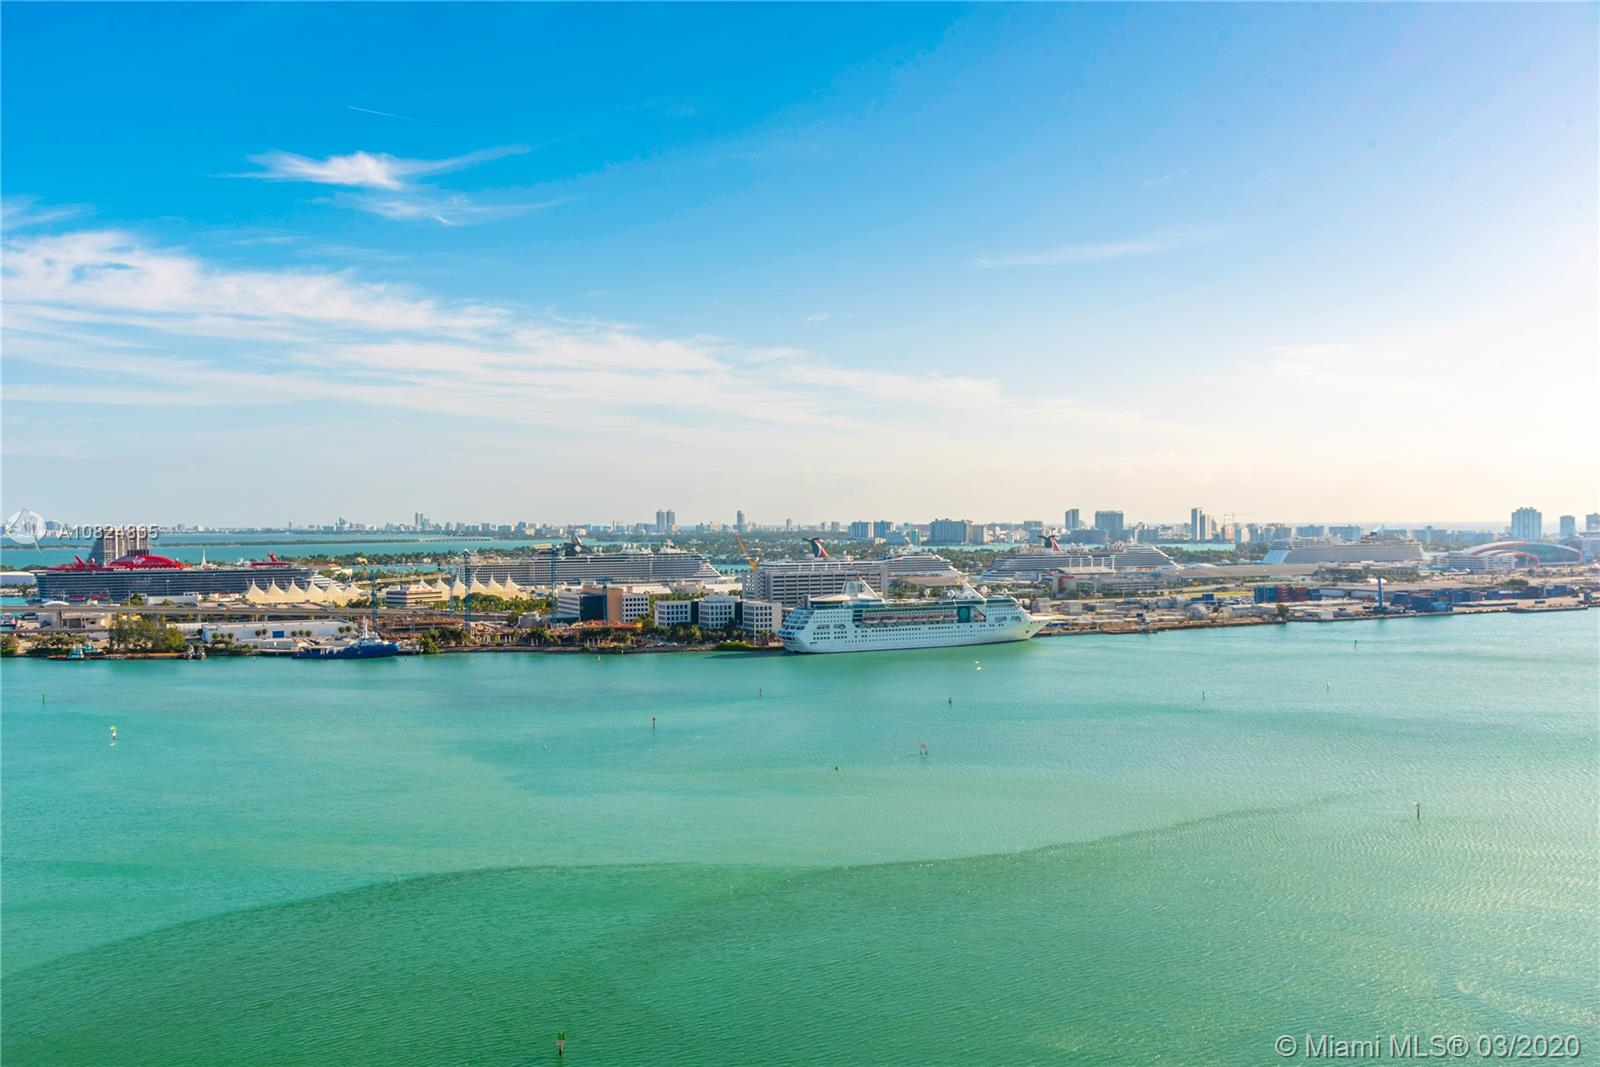 Immaculate 3 bedrooms 3.5 bathrooms flow-through unit with direct city and bay views. Asia is a luxury condominium featuring private elevators, a state-of-the-art fitness center, concierge services, private pool, and an incredible location in the exclusive island of Brickell Key.